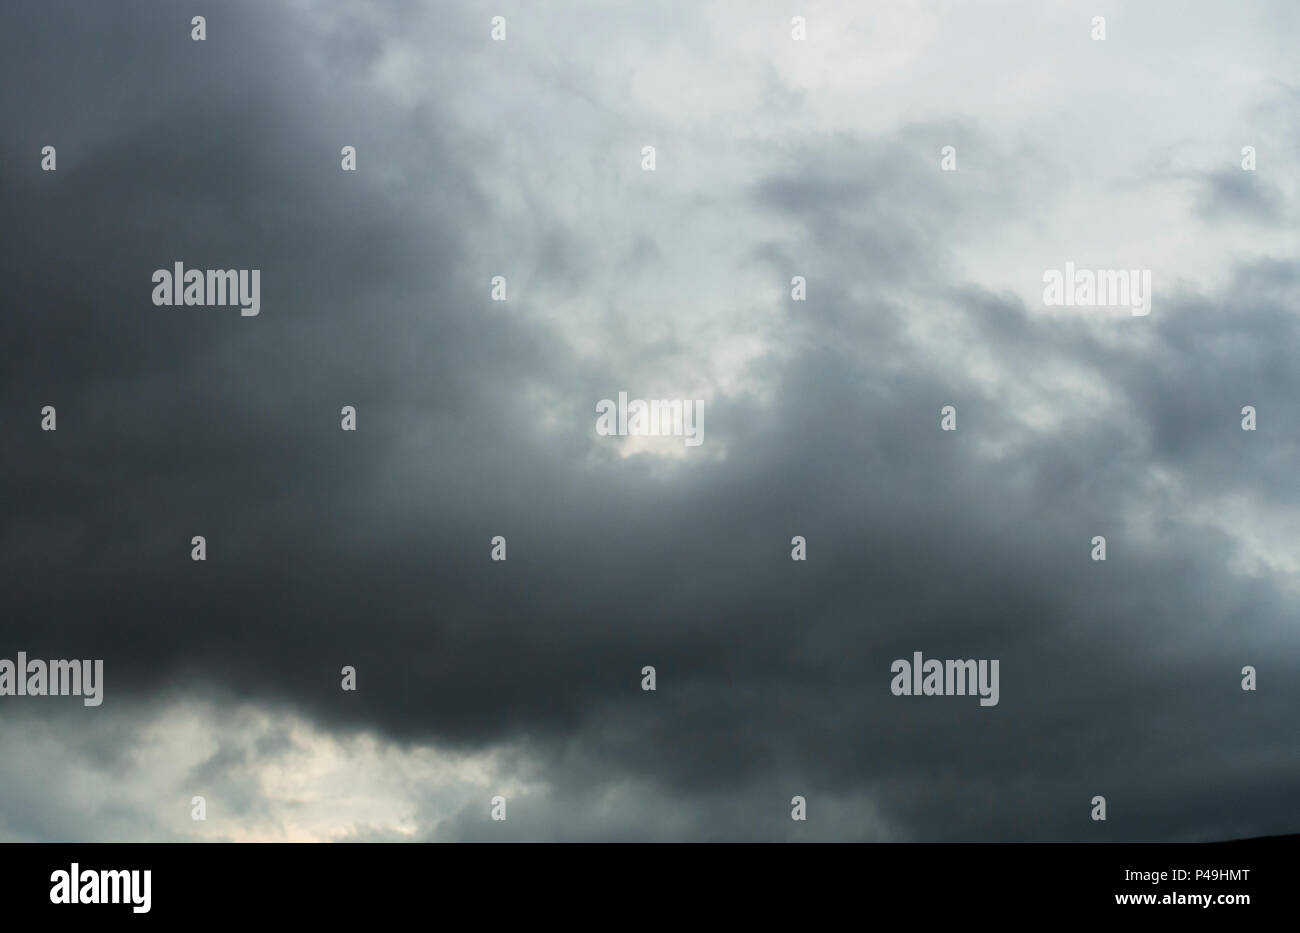 Nimbus rain clouds - Stock Image